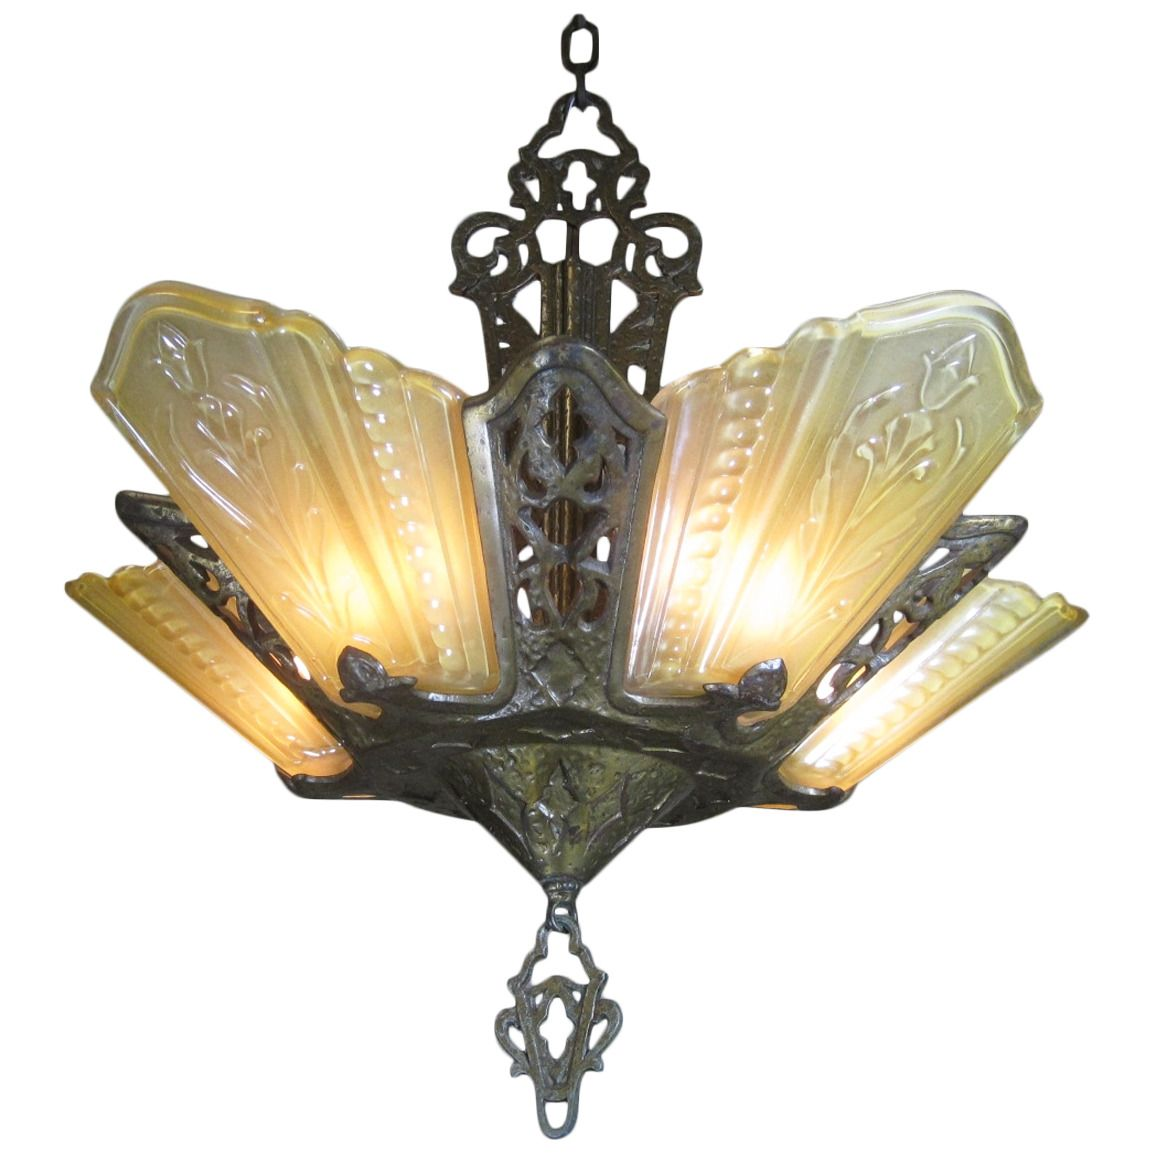 Slip shade chandelier art deco light art deco pendant lighting art deco slip shade chandelier light from a unique collection of antique and modern chandeliers arubaitofo Choice Image